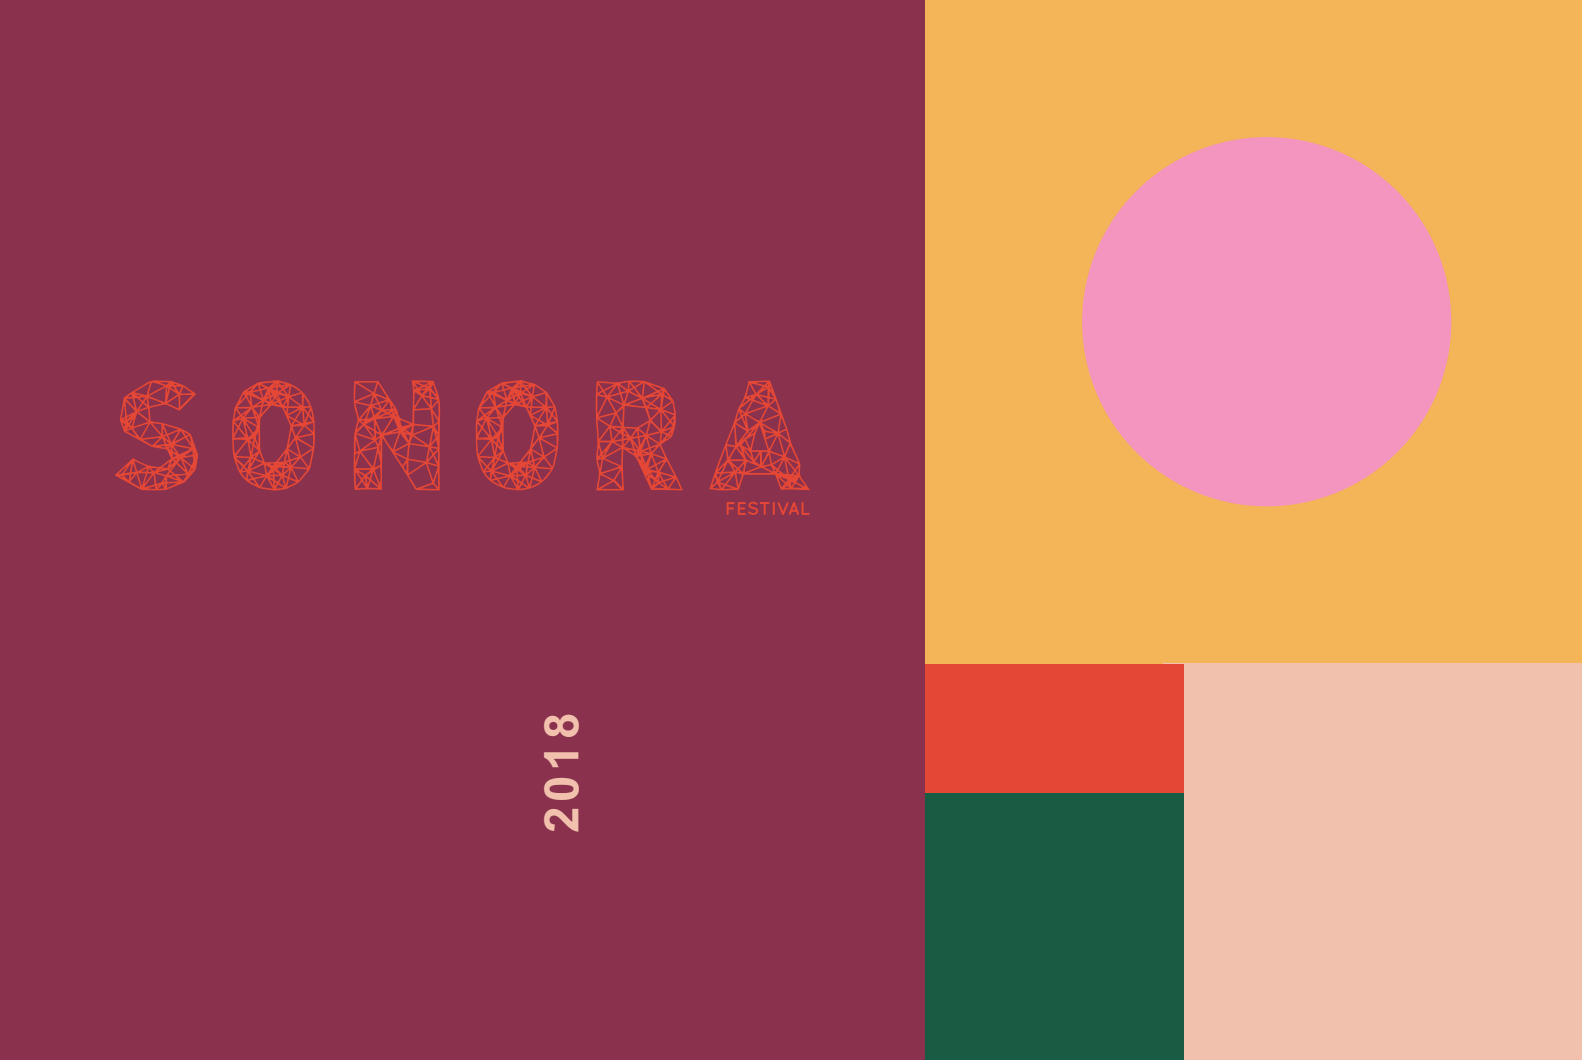 Sonora Festival - In 2018, Ley Line curated the first Sonora Festival in the United States, celebrating female composers